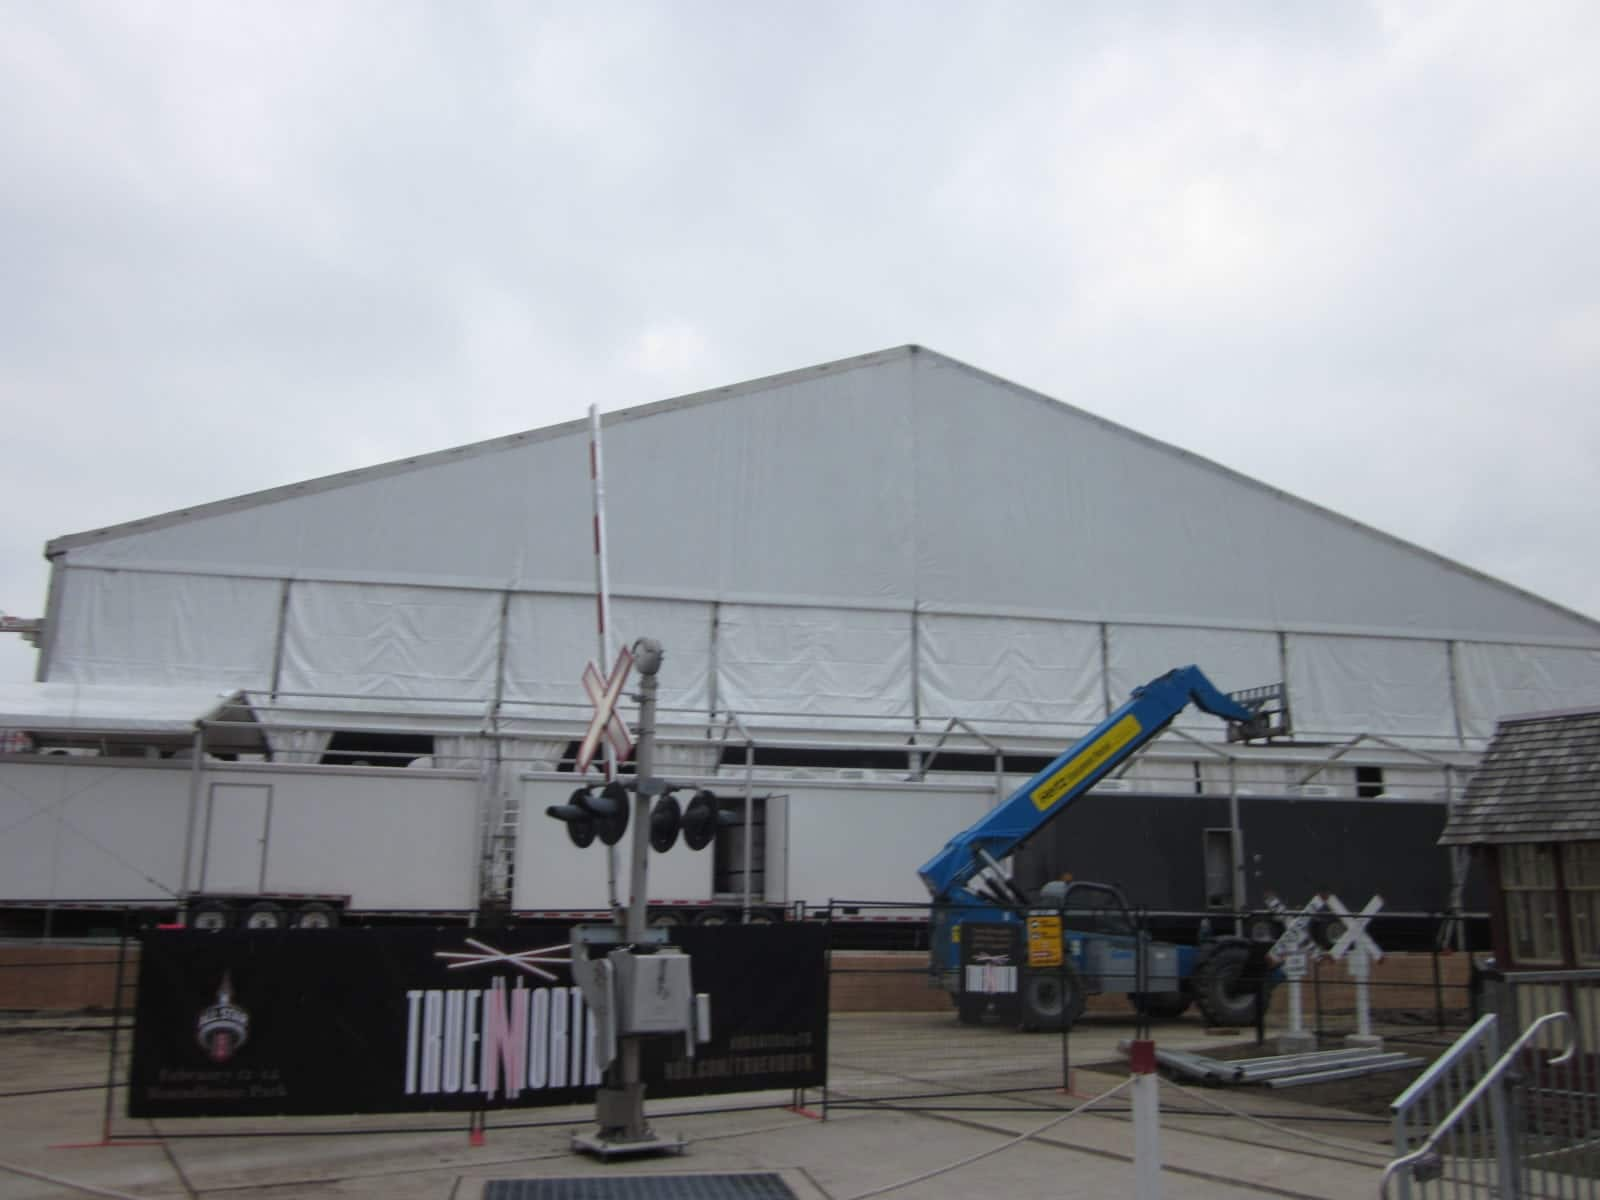 Regal Tent is the only supplier of a double decker tent in Canada and as you can see from the photos below it truly adds a whole new level of luxury to ... & NBA All-Star Weekend Tent - Regal Tent Productions